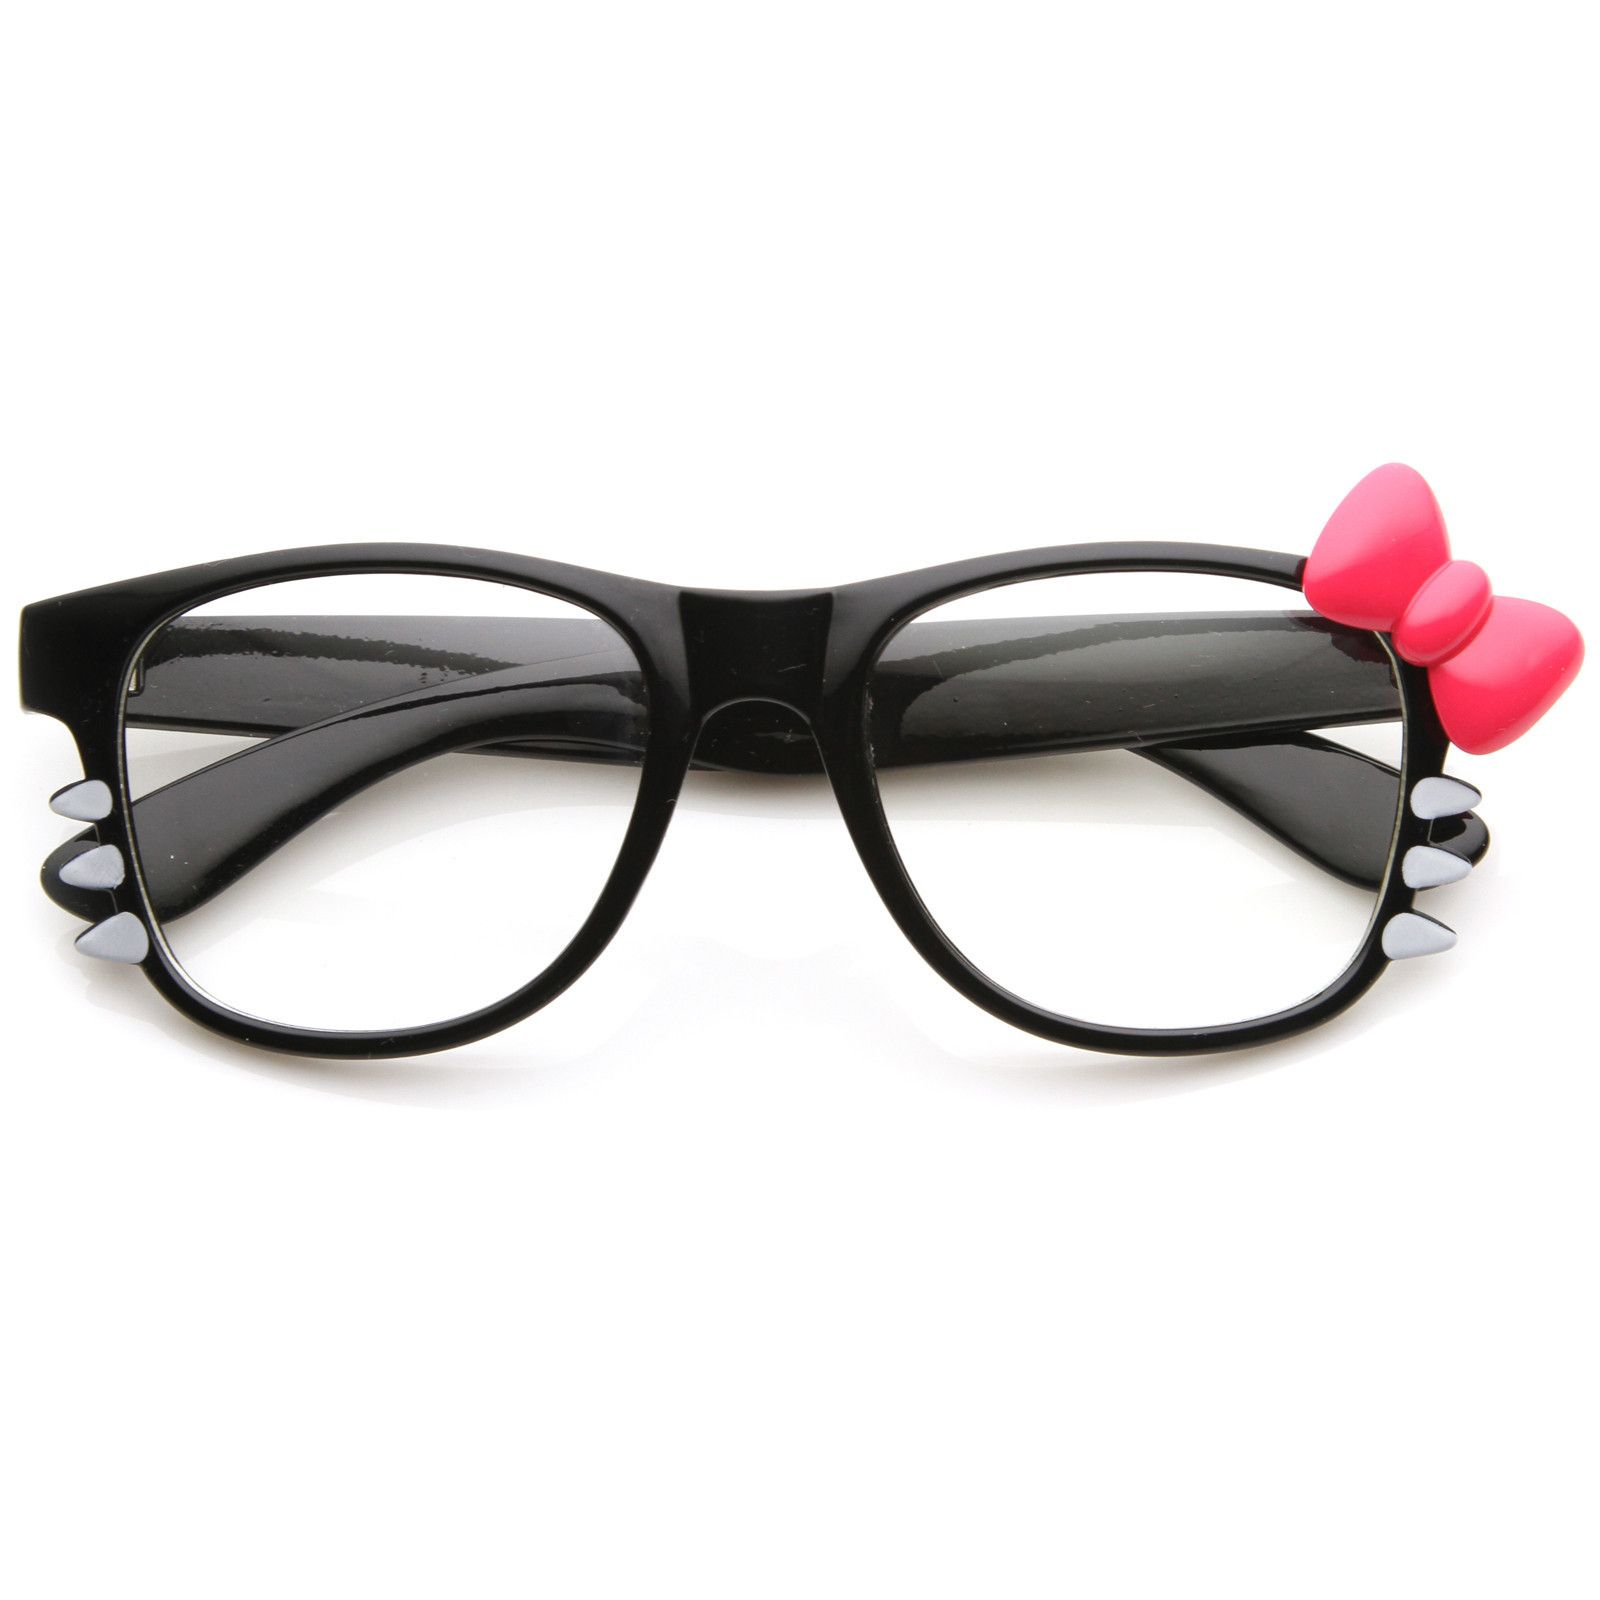 5d8c236a28 Cute Womens Hello Kitty Bow Clear Lens Glasses With Whiskers 8499 ...